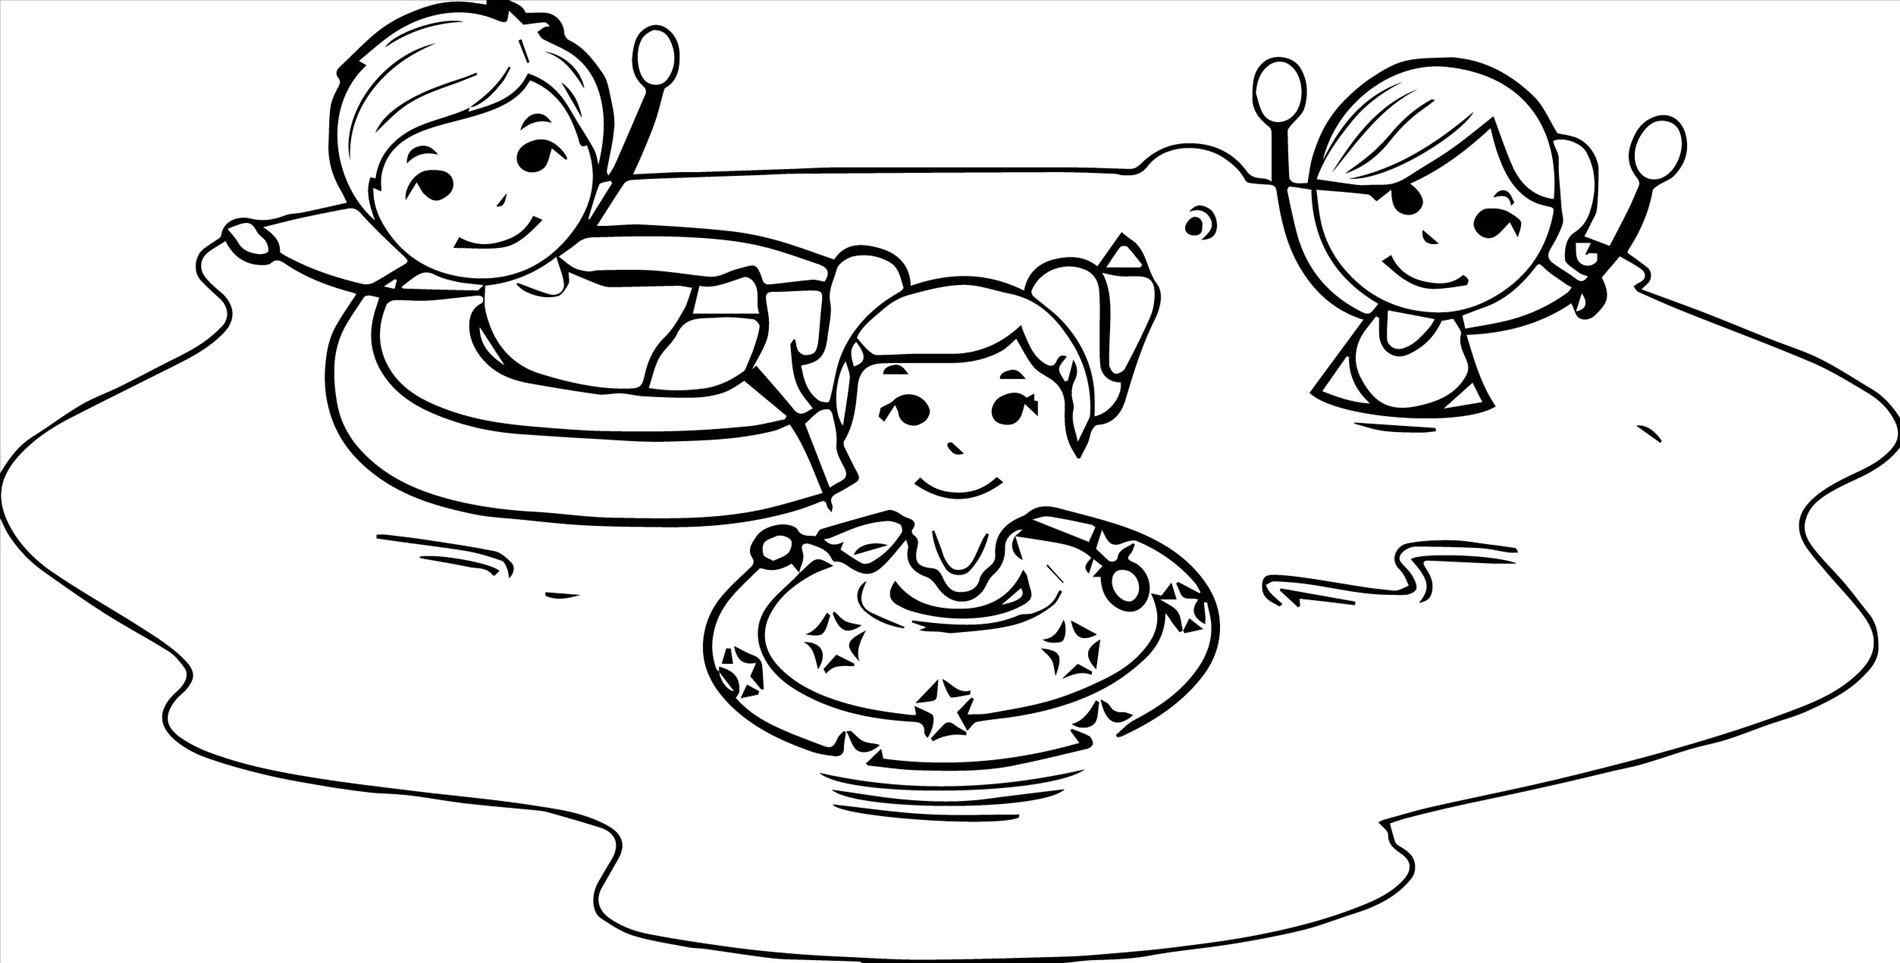 Vacation Clipart Black And White 3 Clipart Station